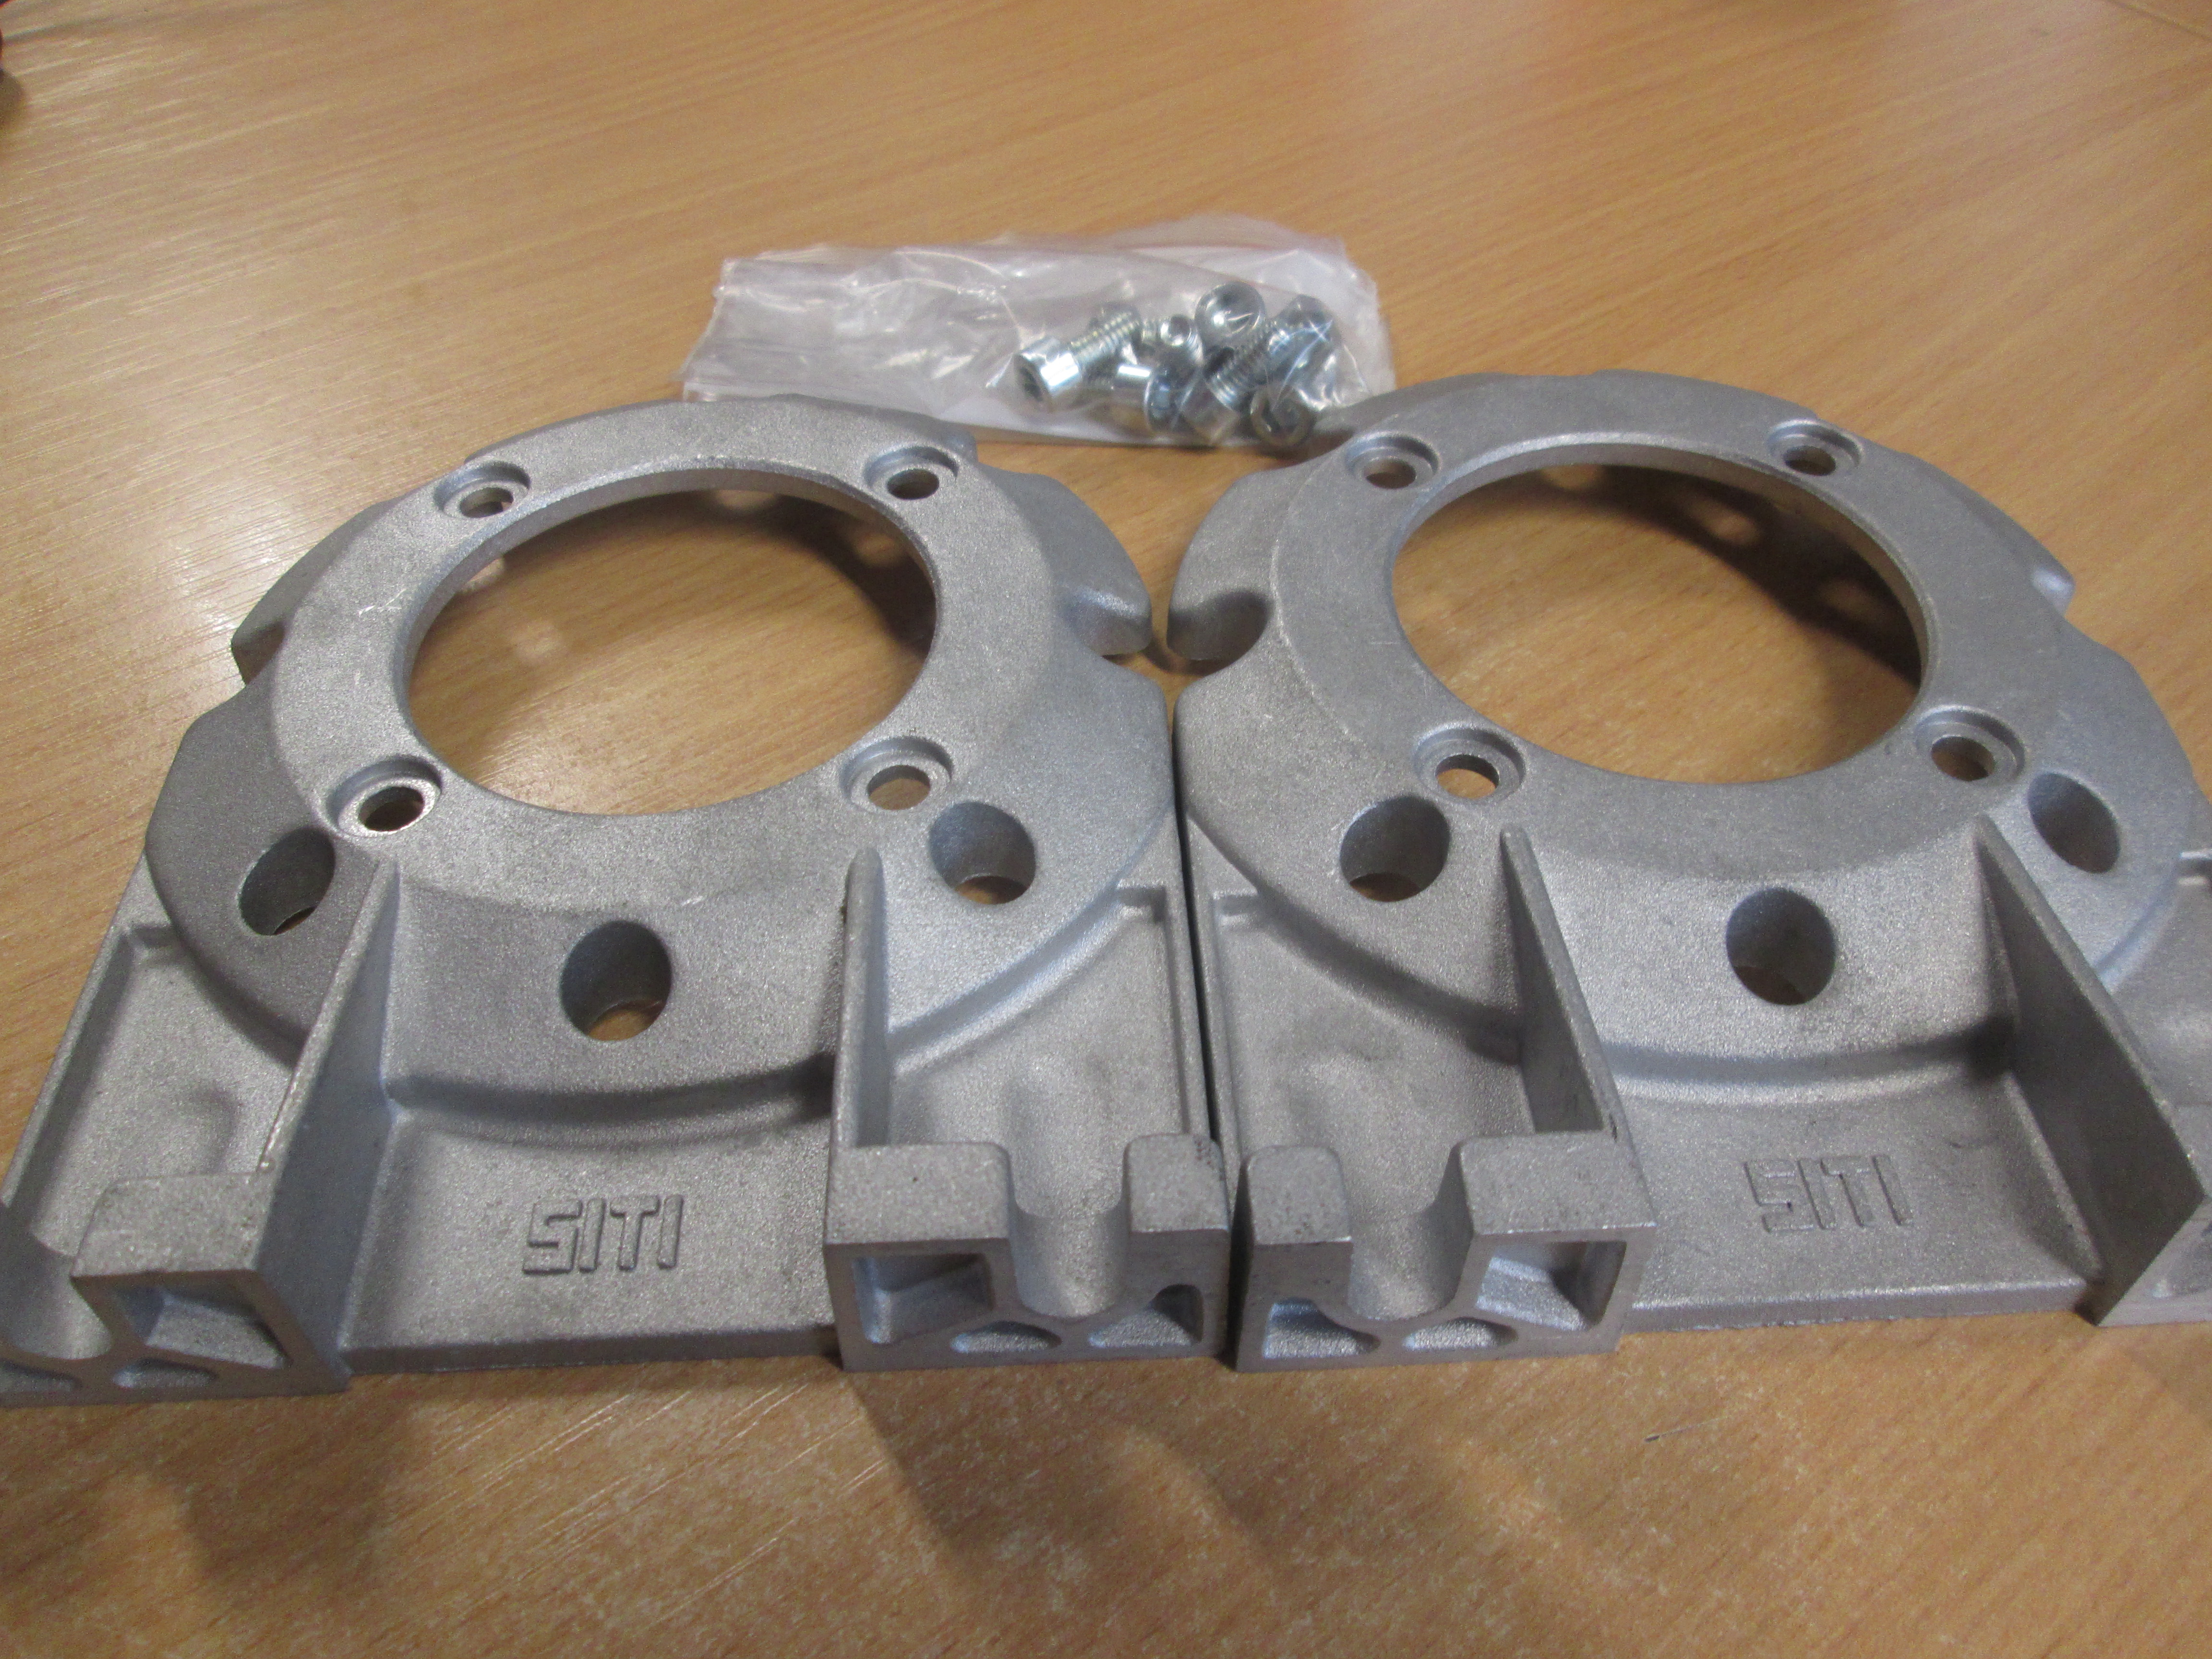 FEET TO SUIT MI50 SITI Gearbox 15:1 Type A Right Angled D71